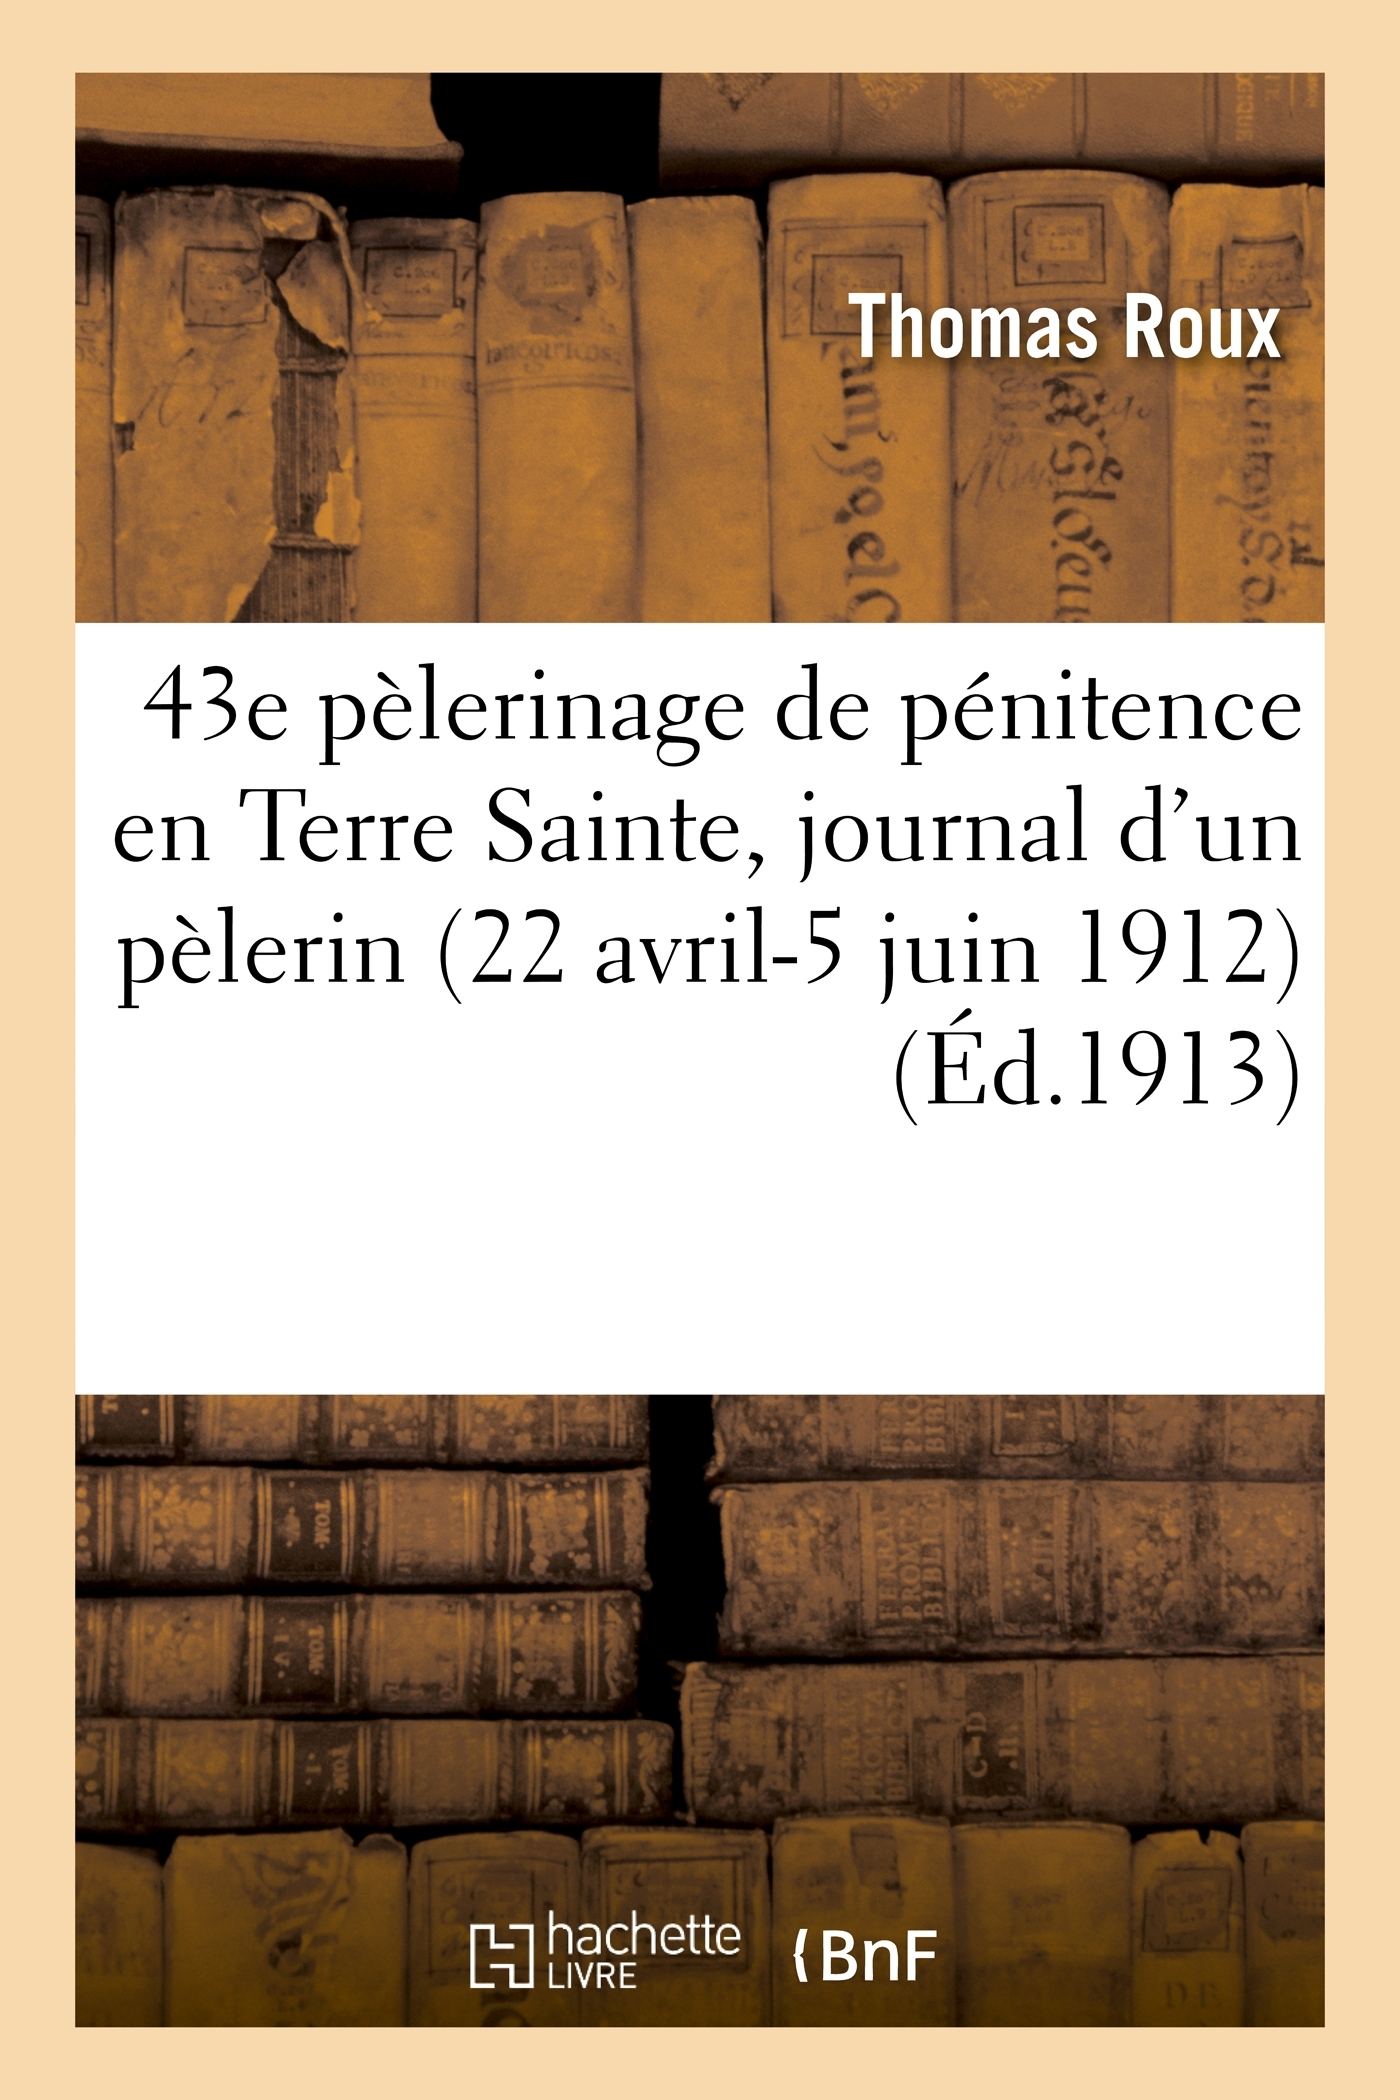 43E PELERINAGE DE PENITENCE EN TERRE SAINTE, JOURNAL D'UN PELERIN (22 AVRIL-5 JUIN 1912)